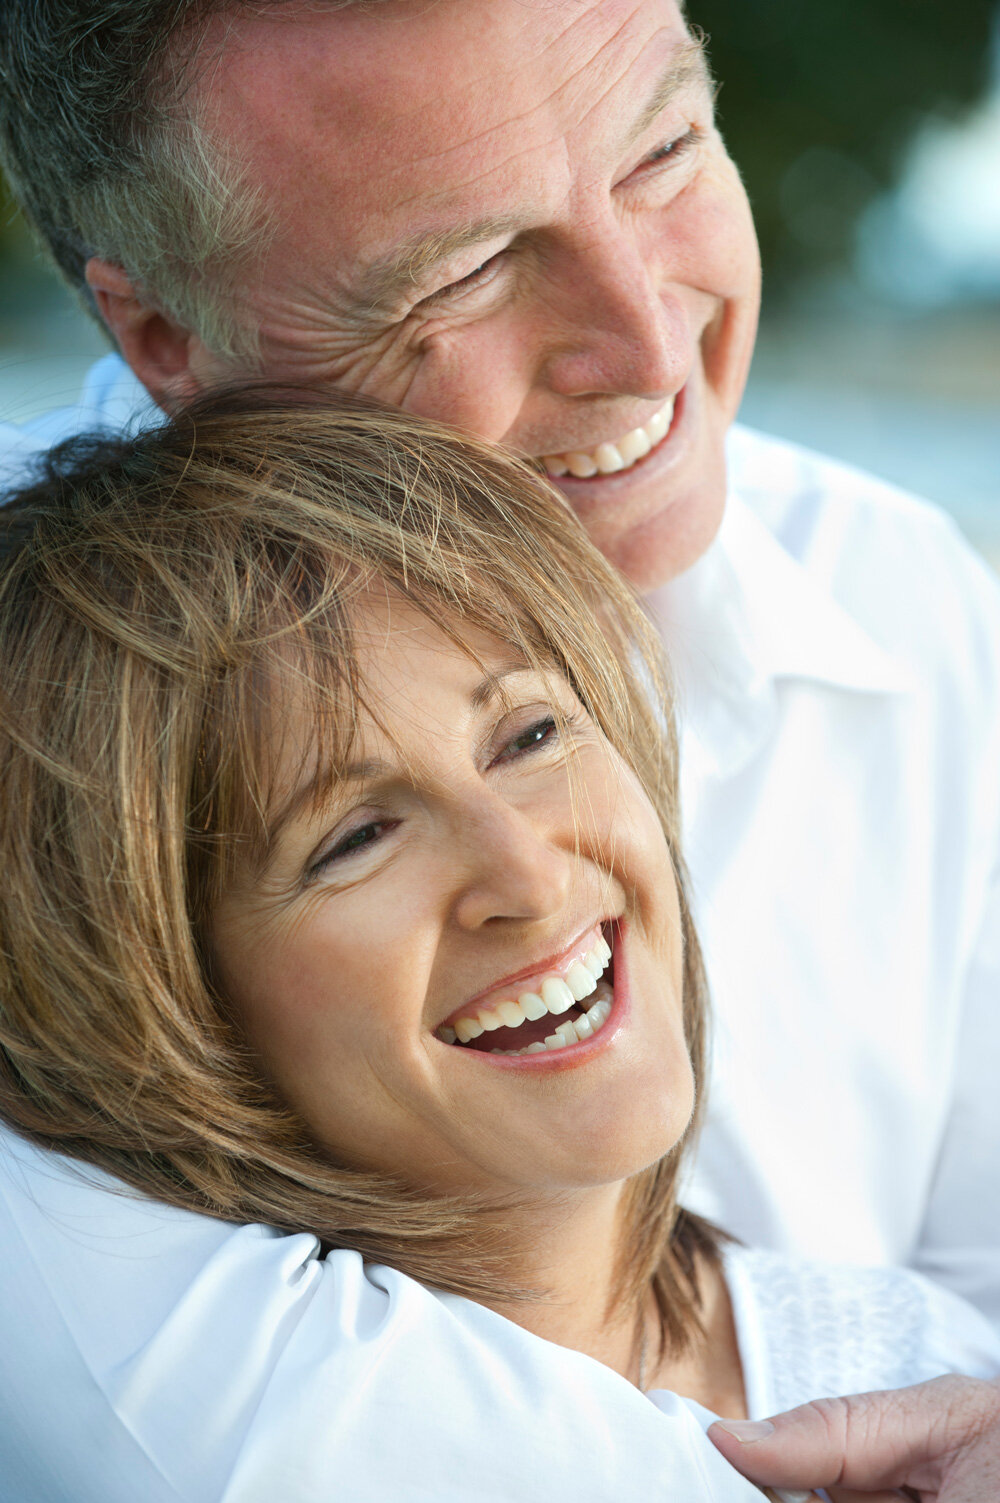 Dentures - We offer a range of denture options as shown in the adjoining price guide. Our express denture service guarantees to have the appliance completed and ready for you within one week and by special request we can complete orders over a weekend.Acrylic upper or lower denture • from £450Full or partial plate in chrome • from £950Reline/tooth additions • from £1200